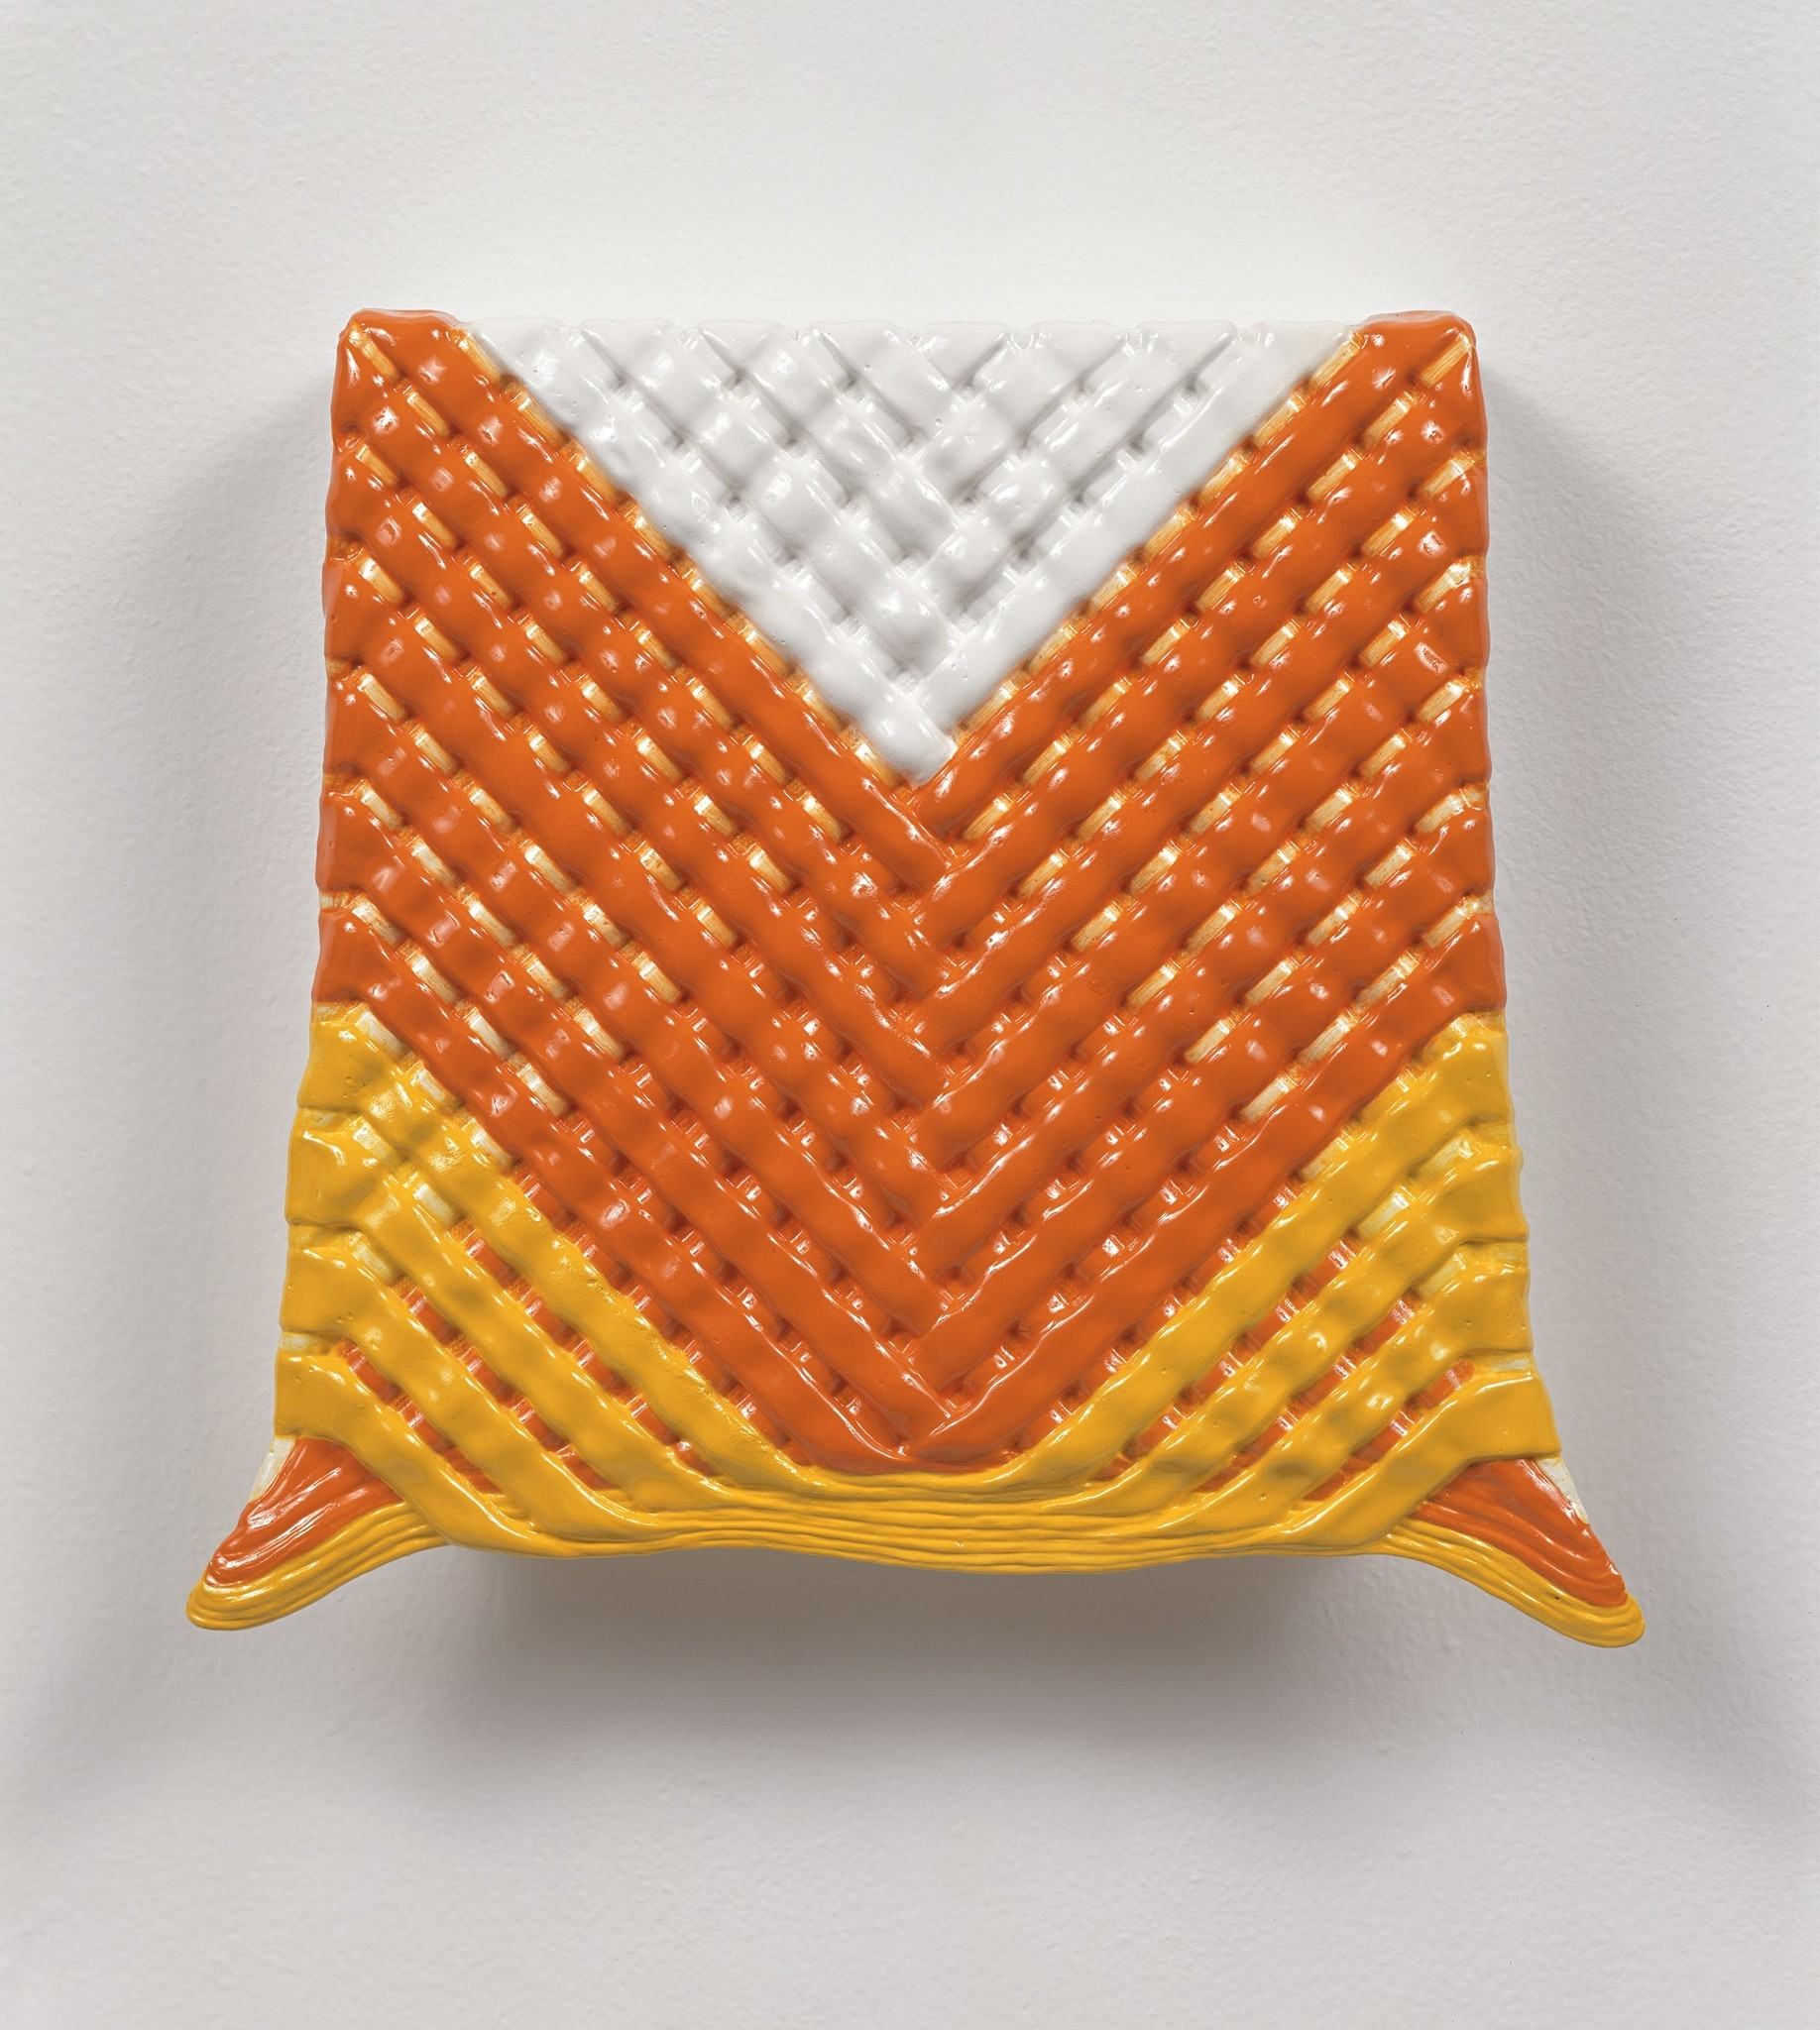 """Candy Corn Weave,"" 1994, by Linda Stark, on view at the Orange County Museum of Art."